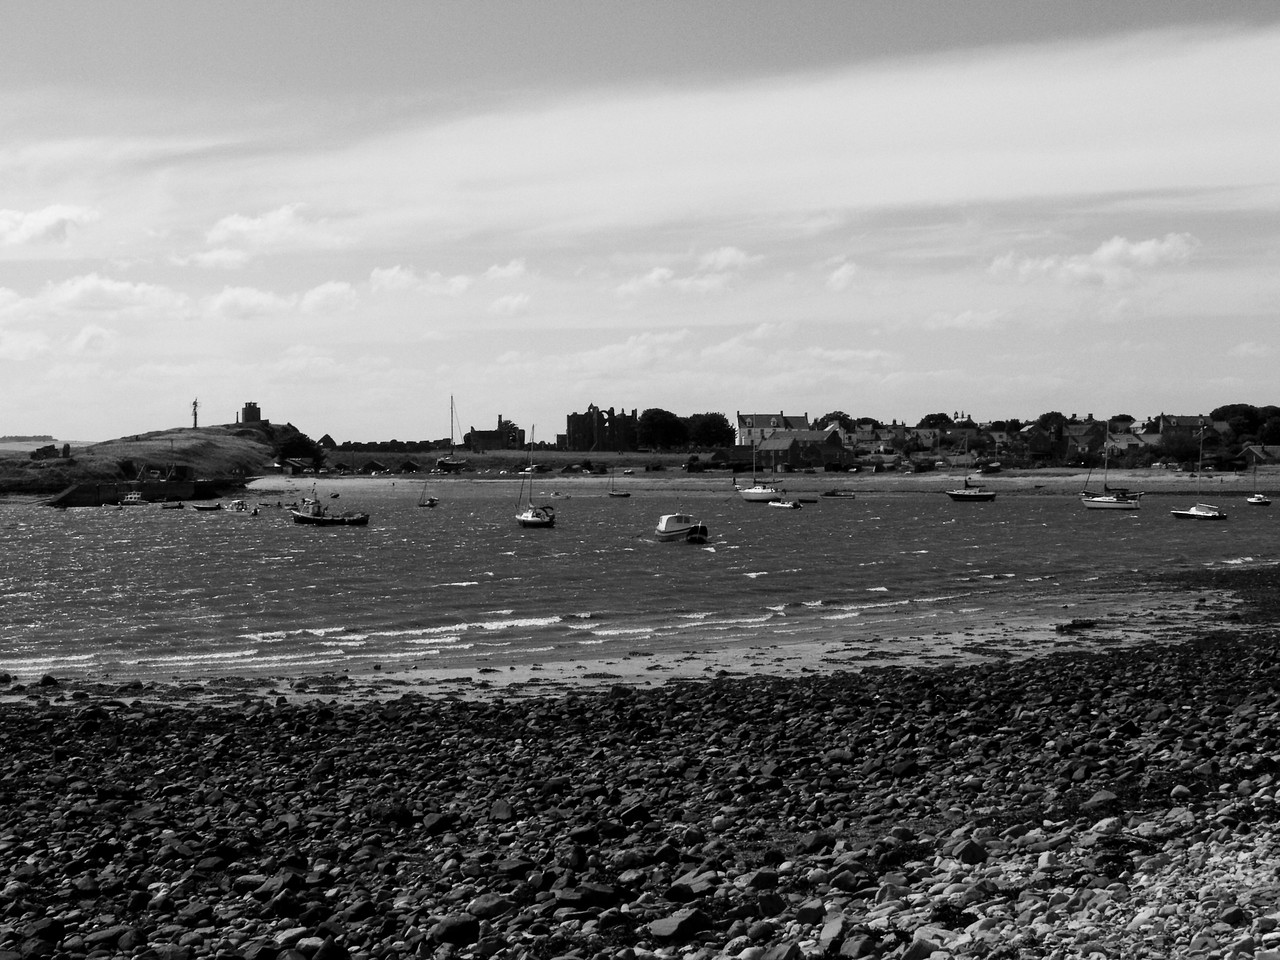 Lindisfarne Harbour, it was a very windy day, typical for this part of the world